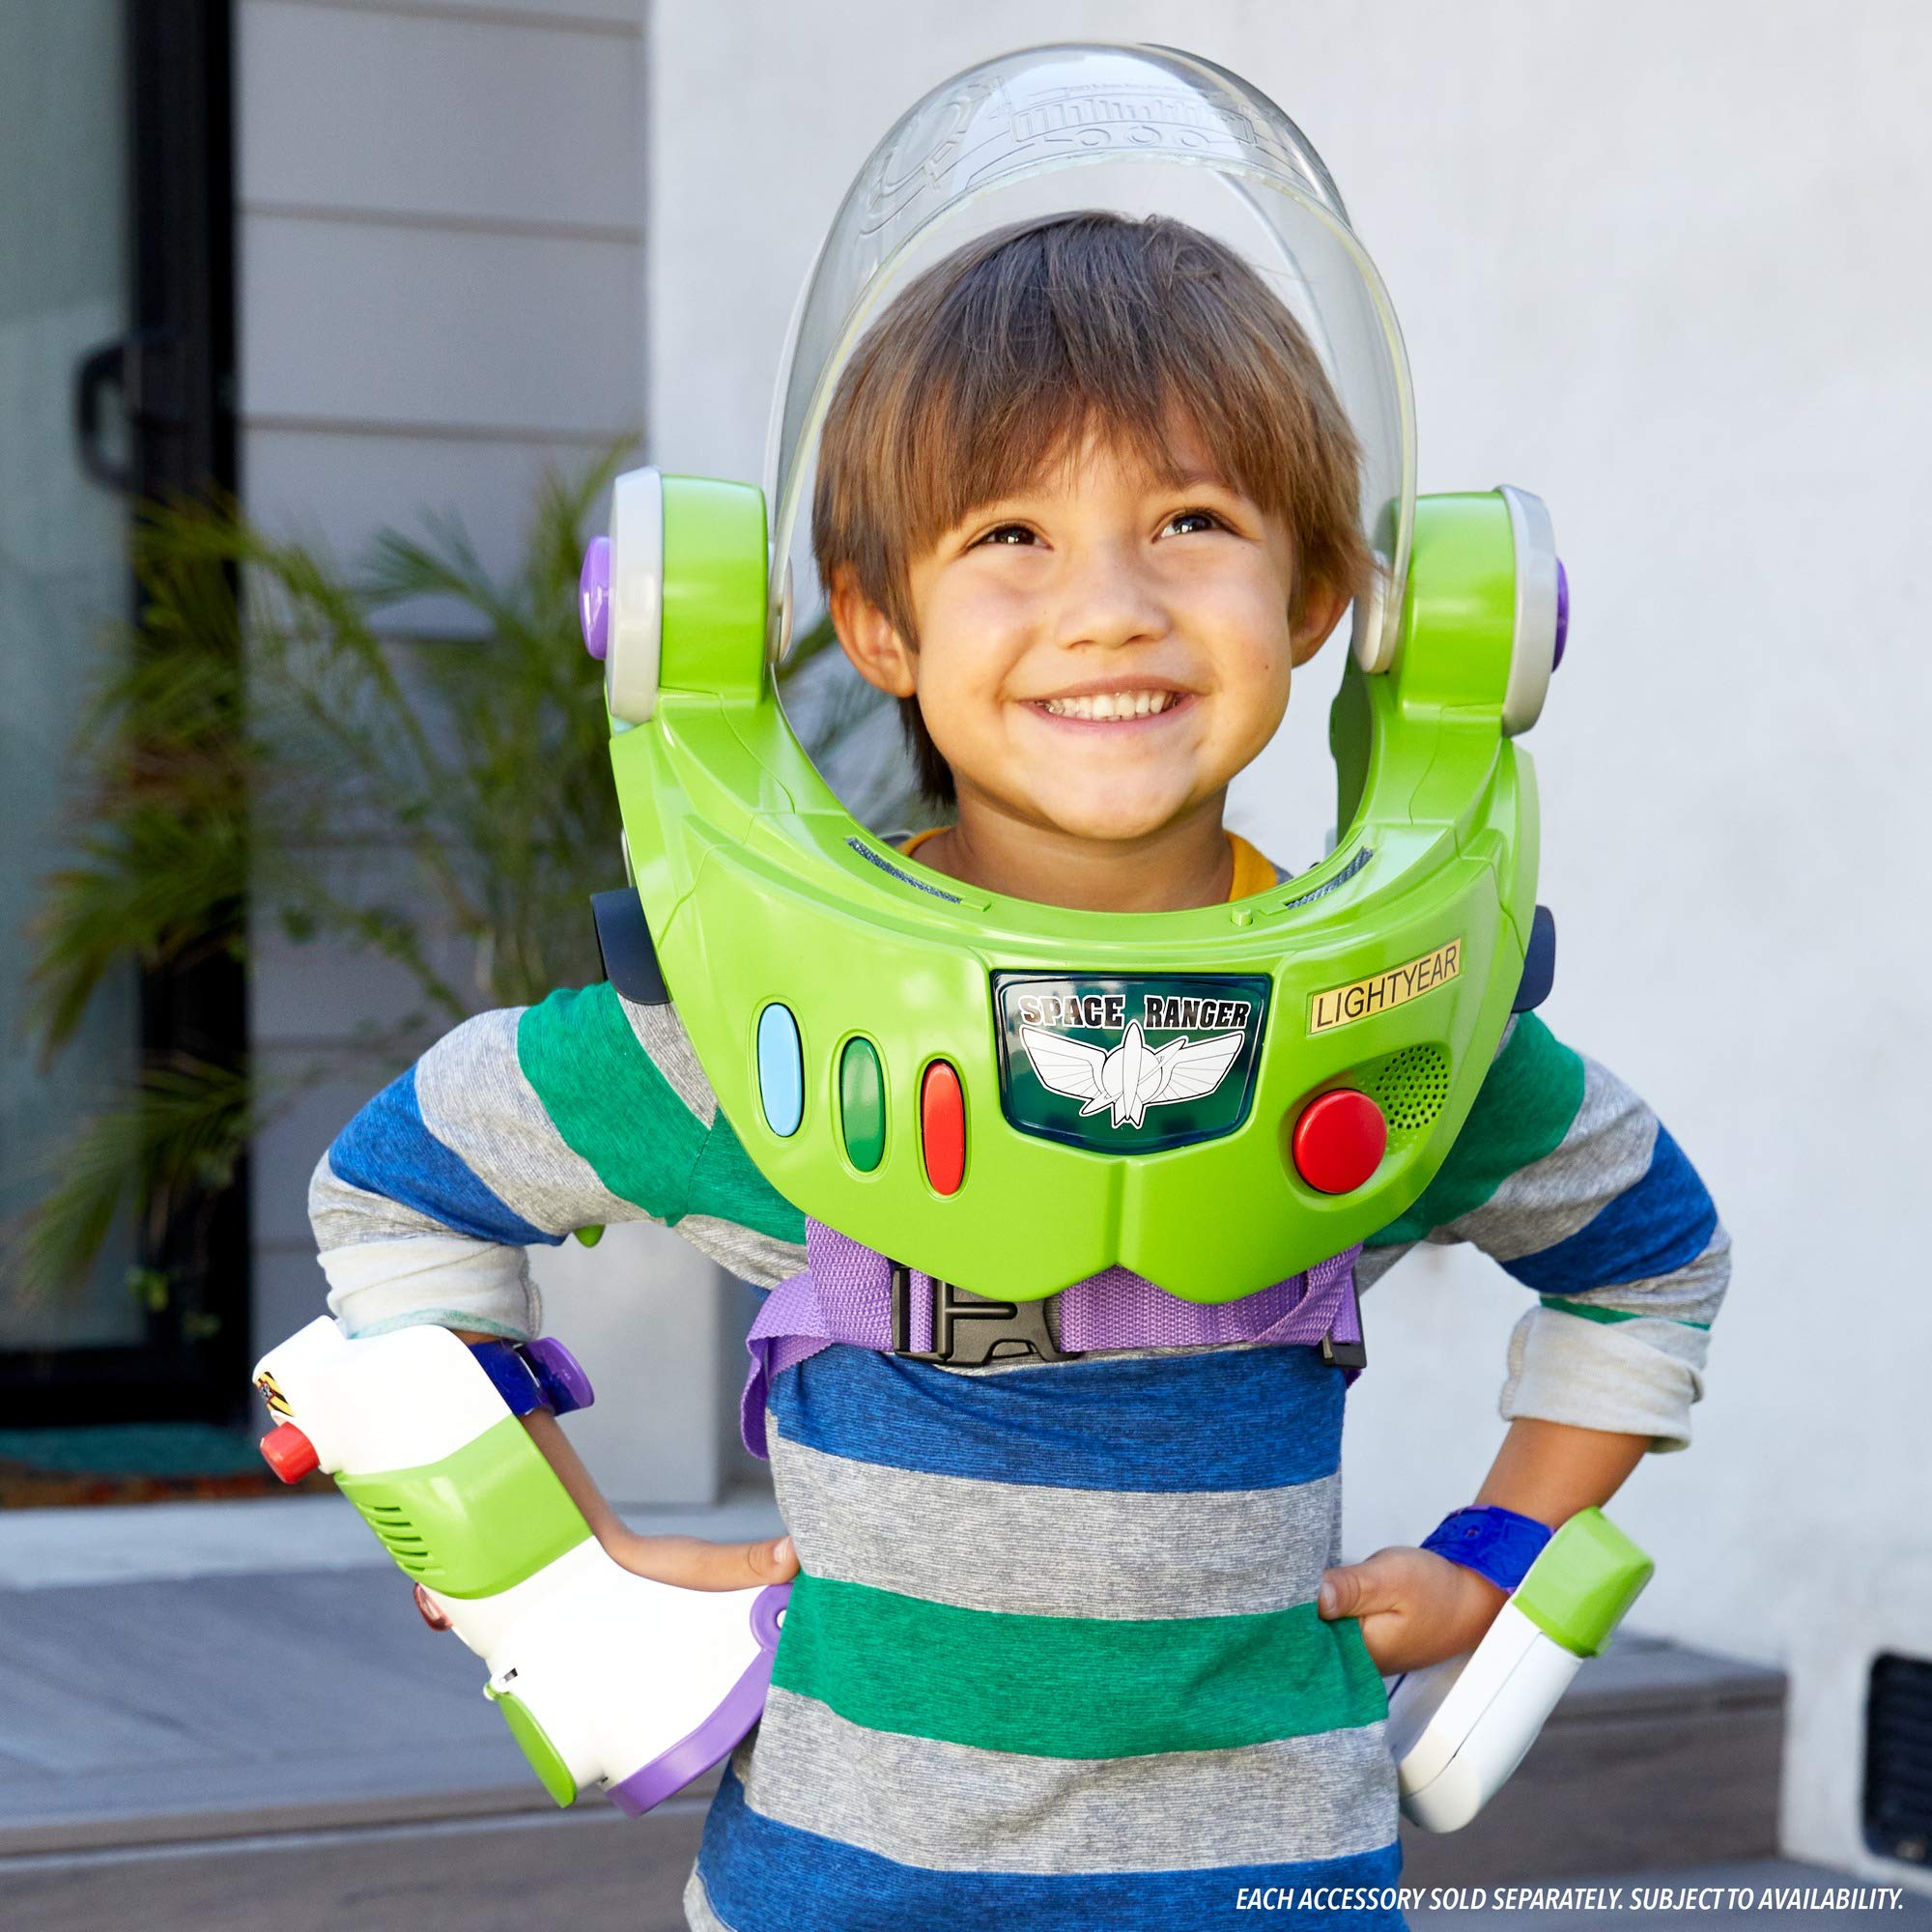 Toy Story Disney Pixar 4 Buzz Lightyear Space Ranger Armor with Jet Pack by Toy Story (Image #2)